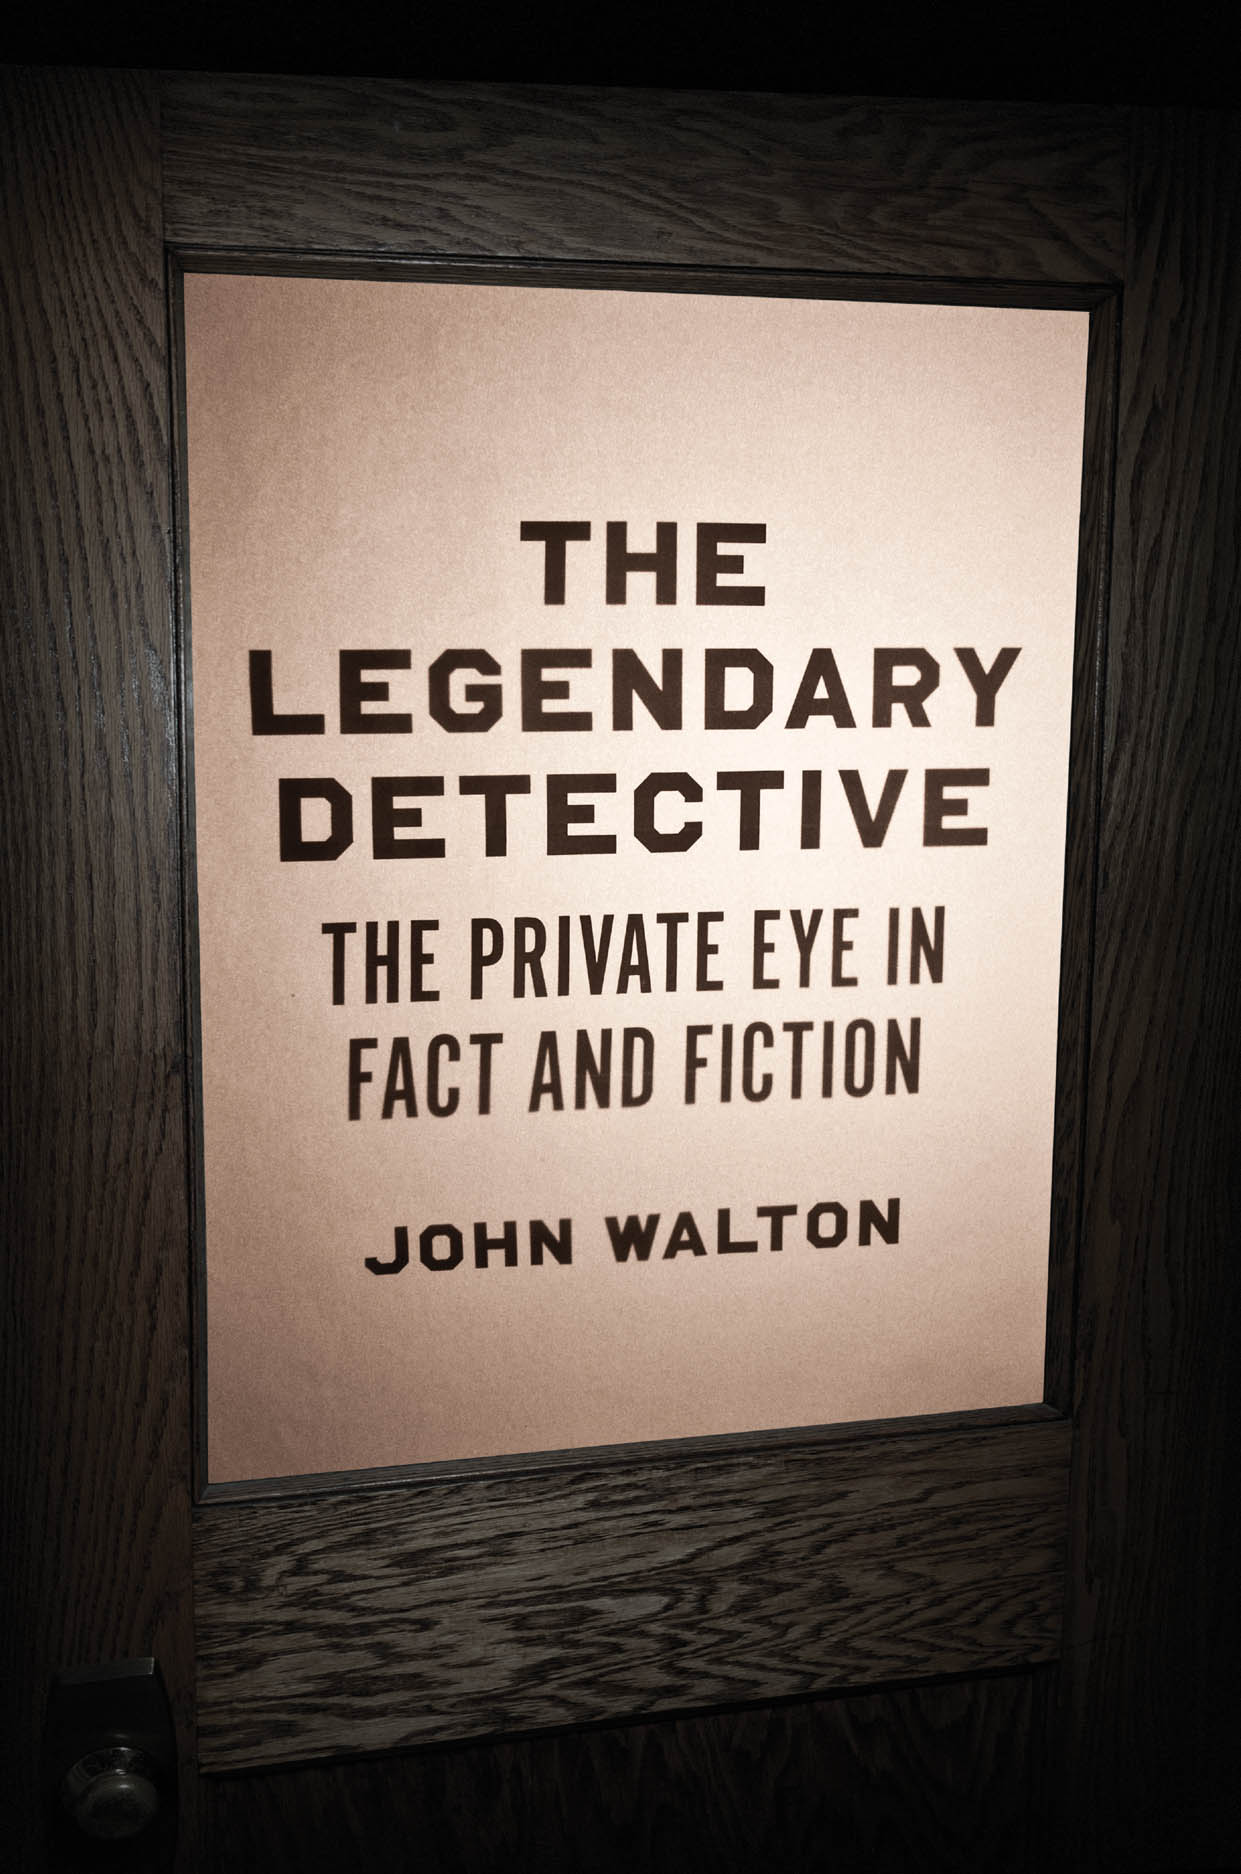 The Legendary Detective: The Private Eye in Fact and Fiction